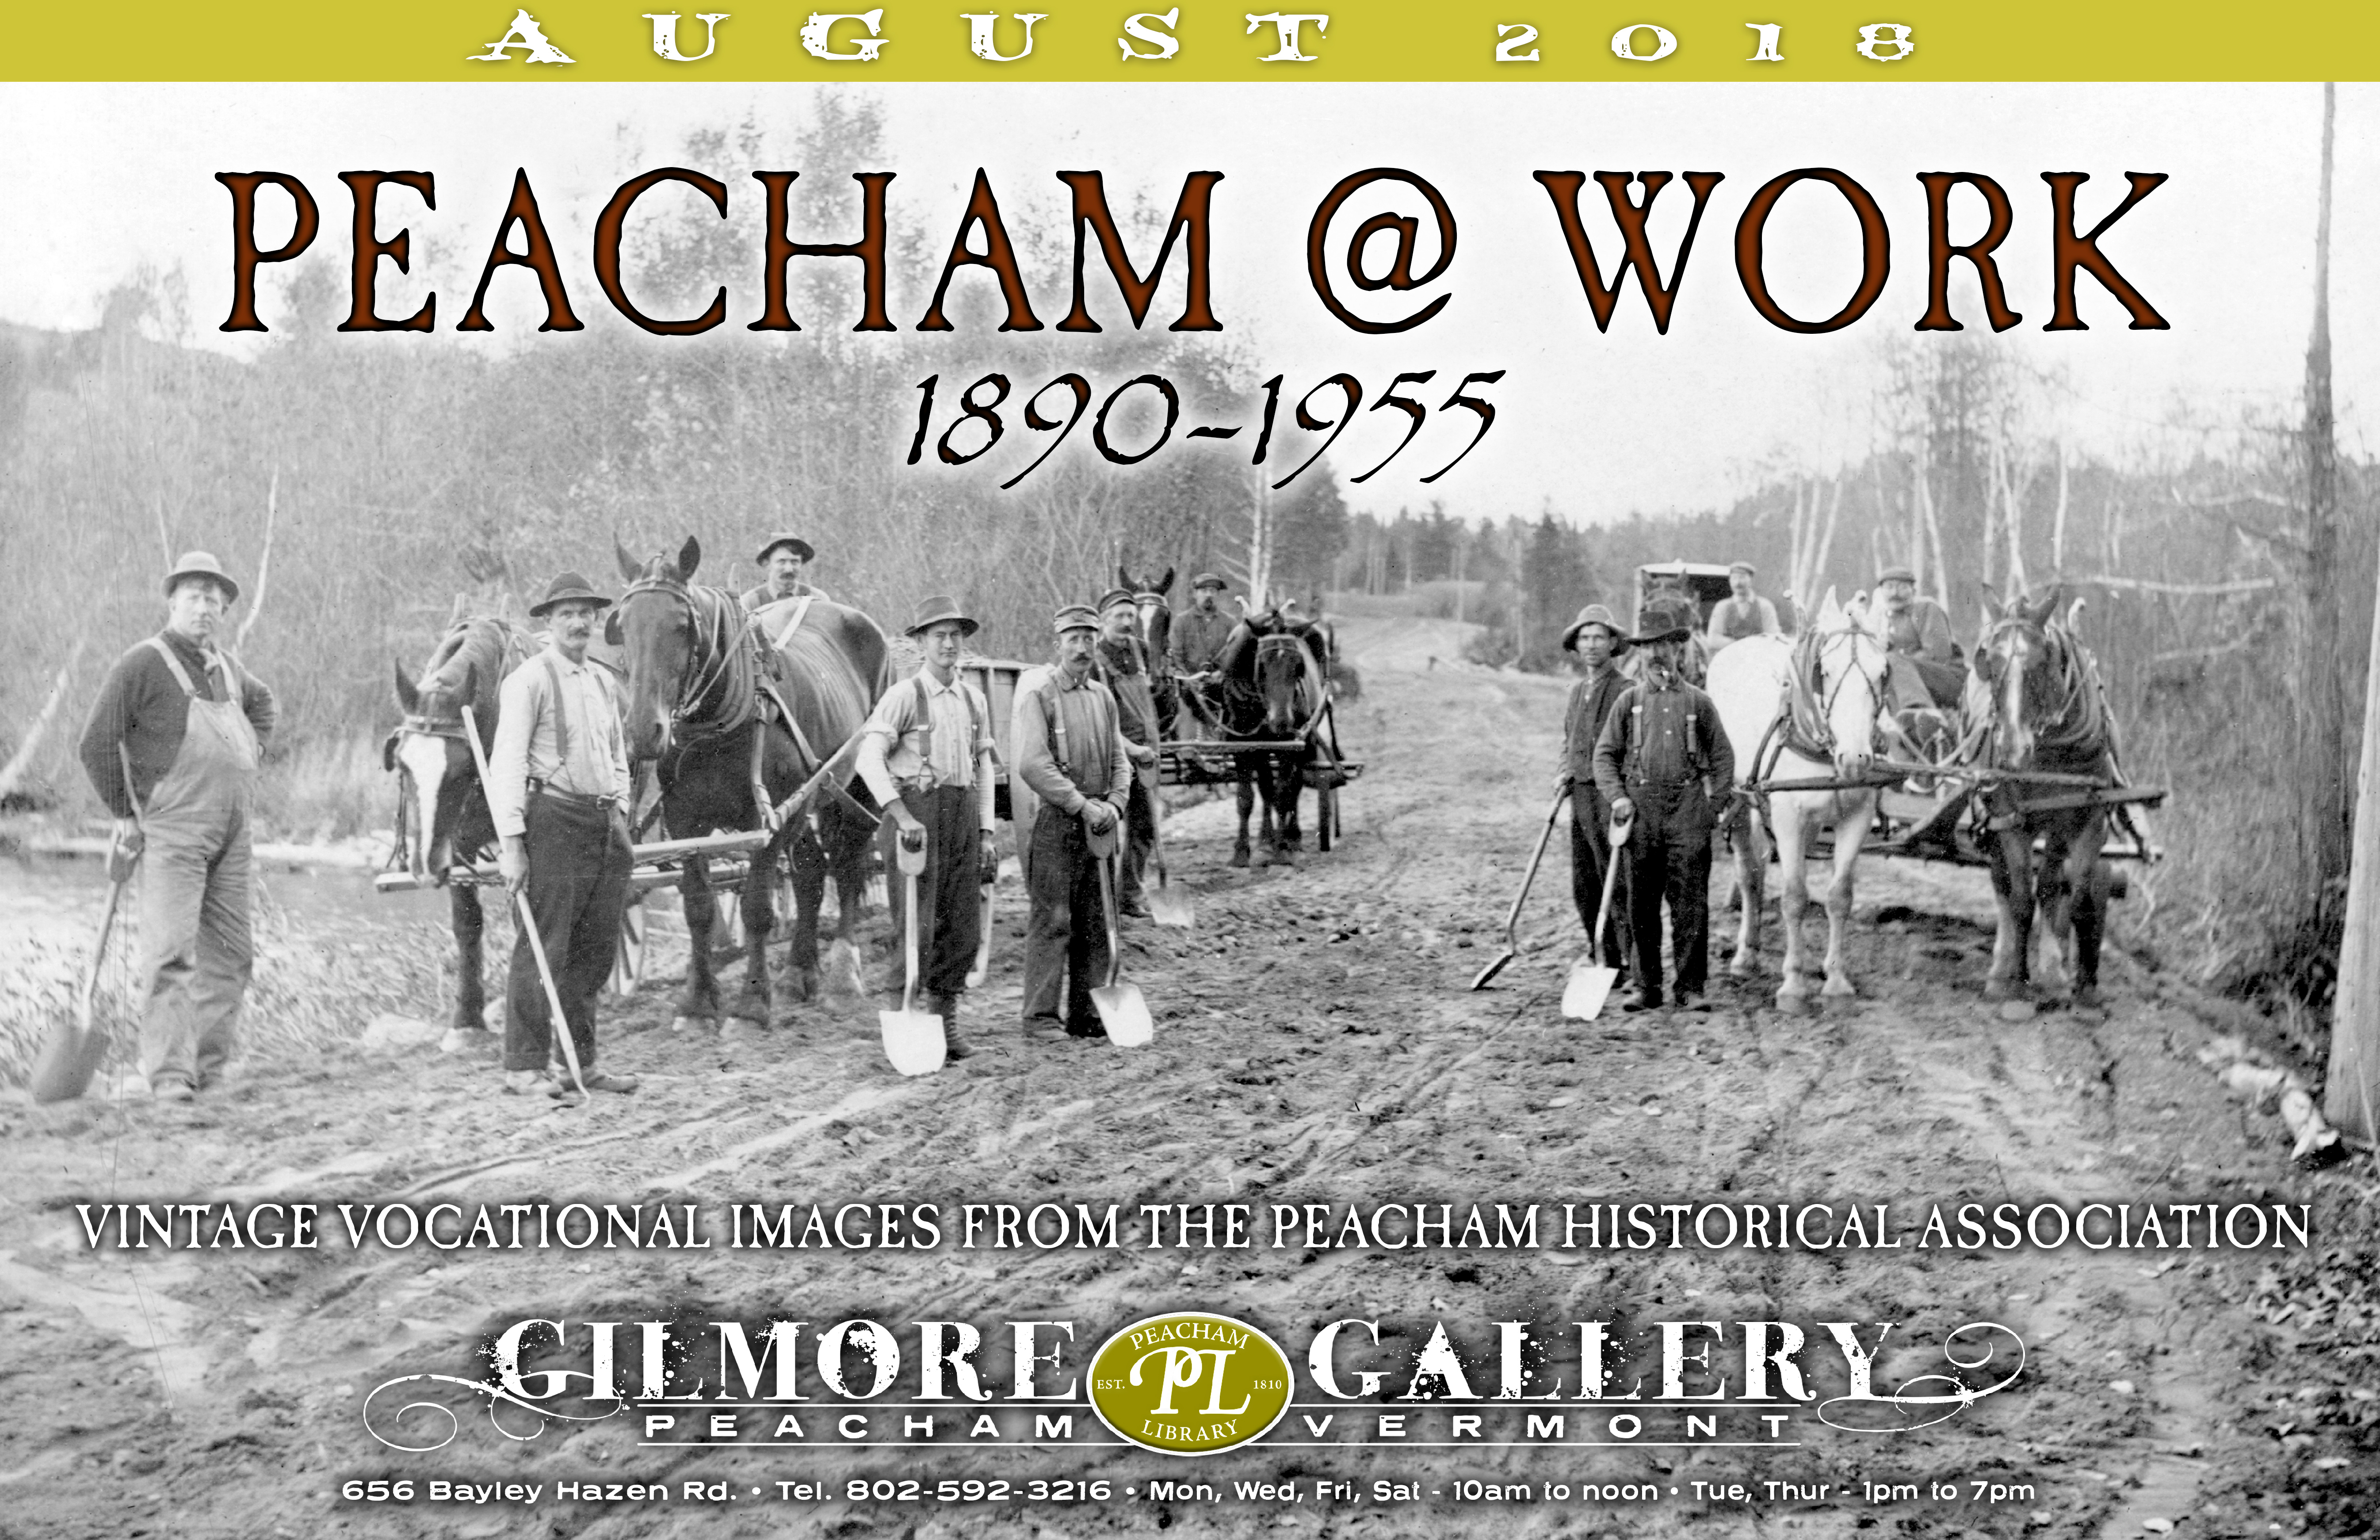 Peacham at Work Gallery Poster